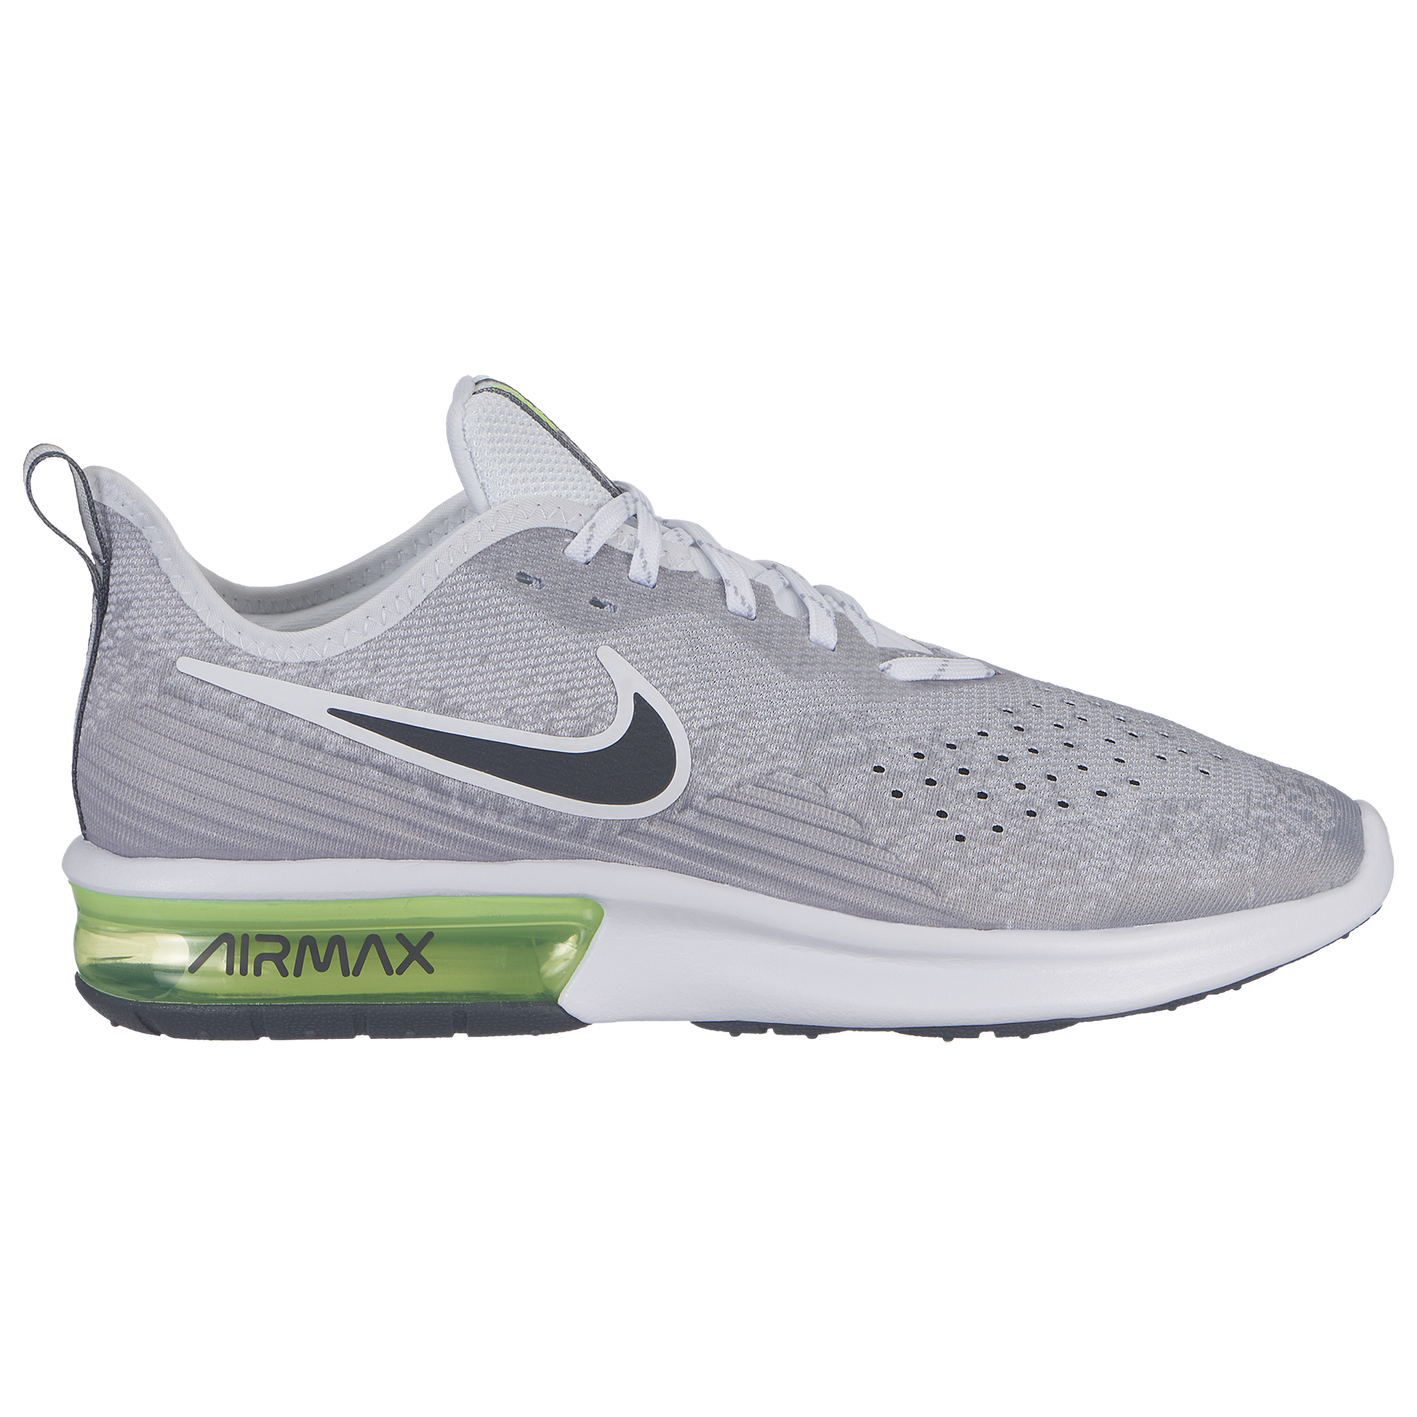 uk availability 6341d 8d4c5 Nike Air Max Sequent 4 - Men s